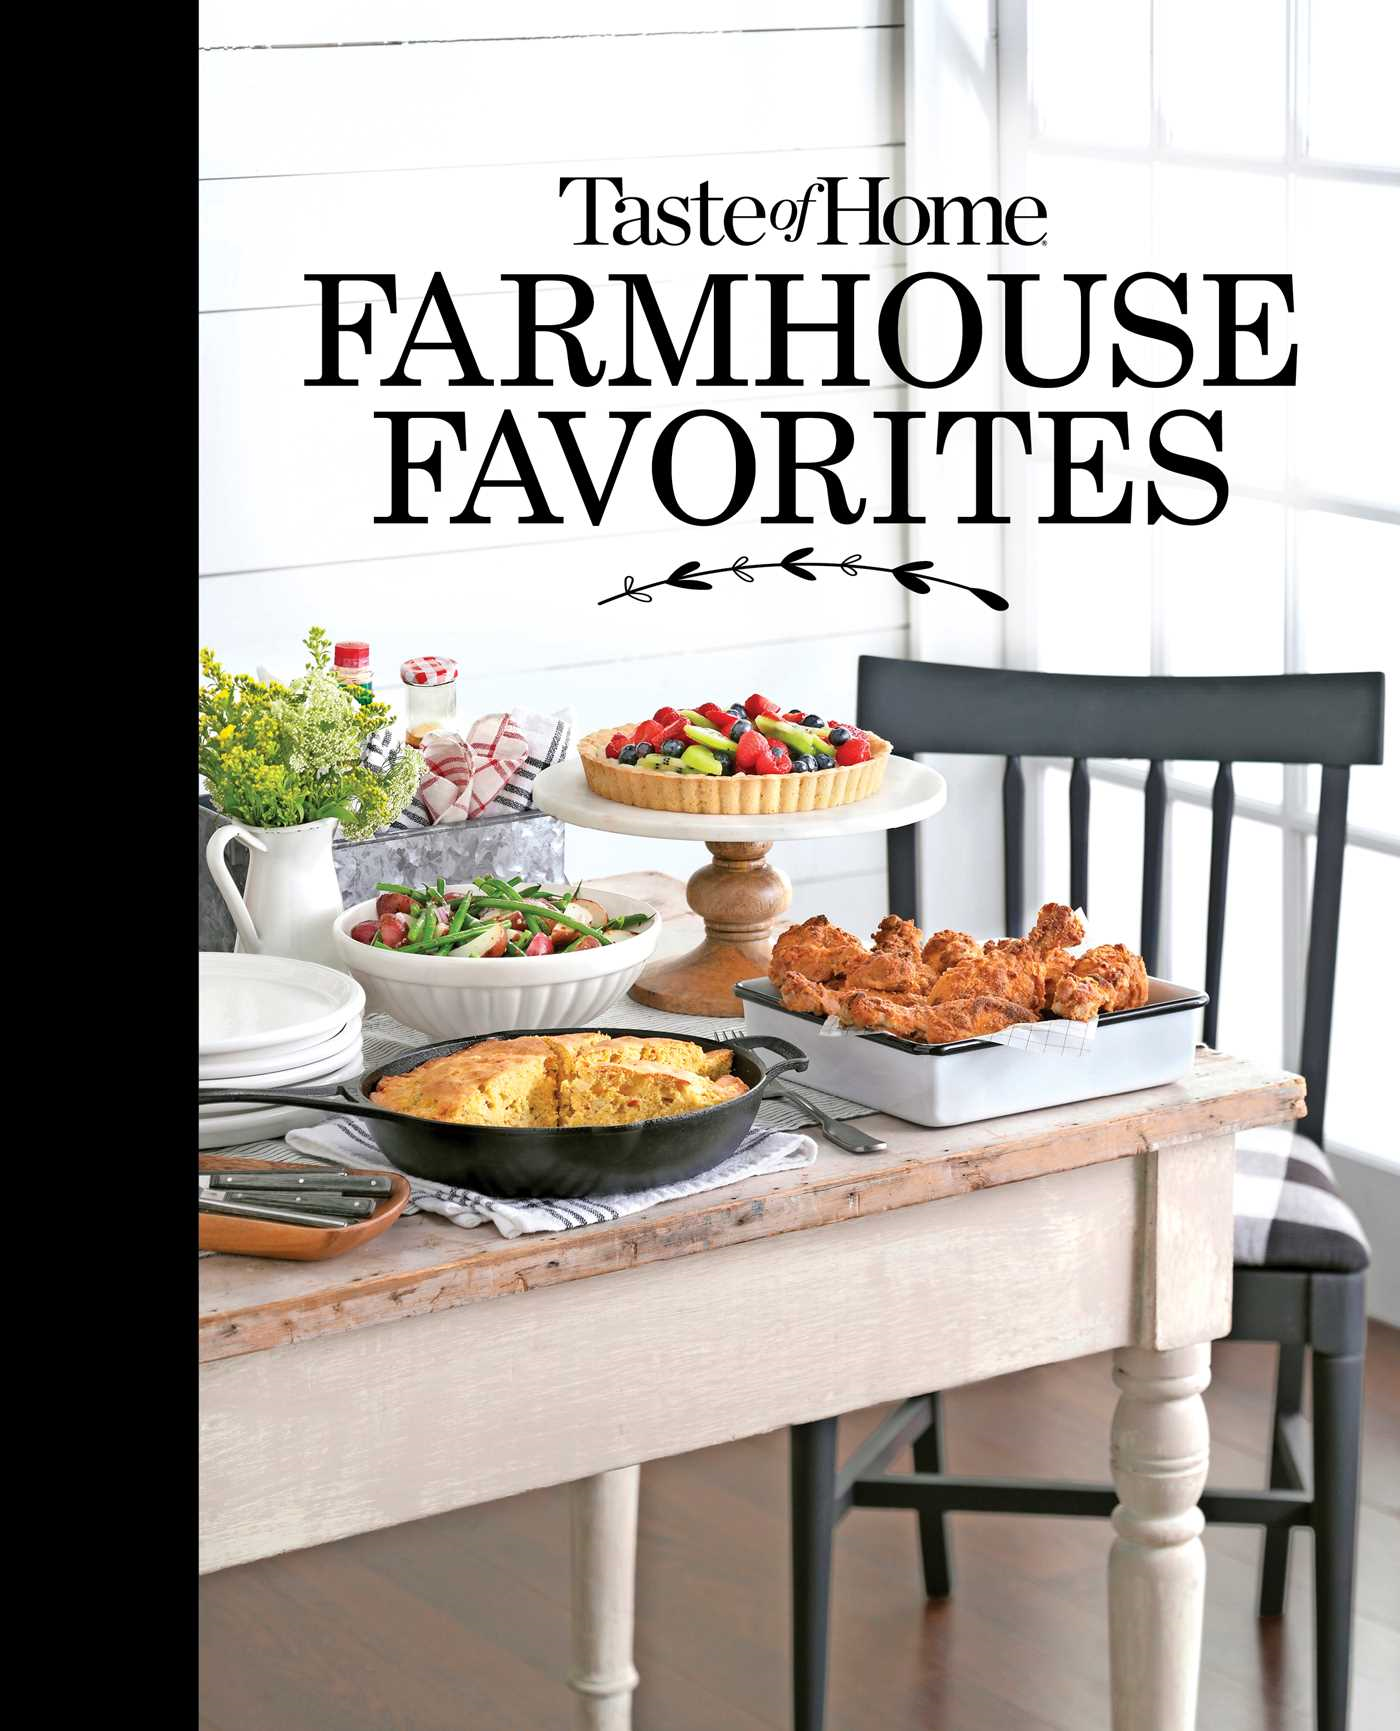 Taste of Home Farmhouse Favorites